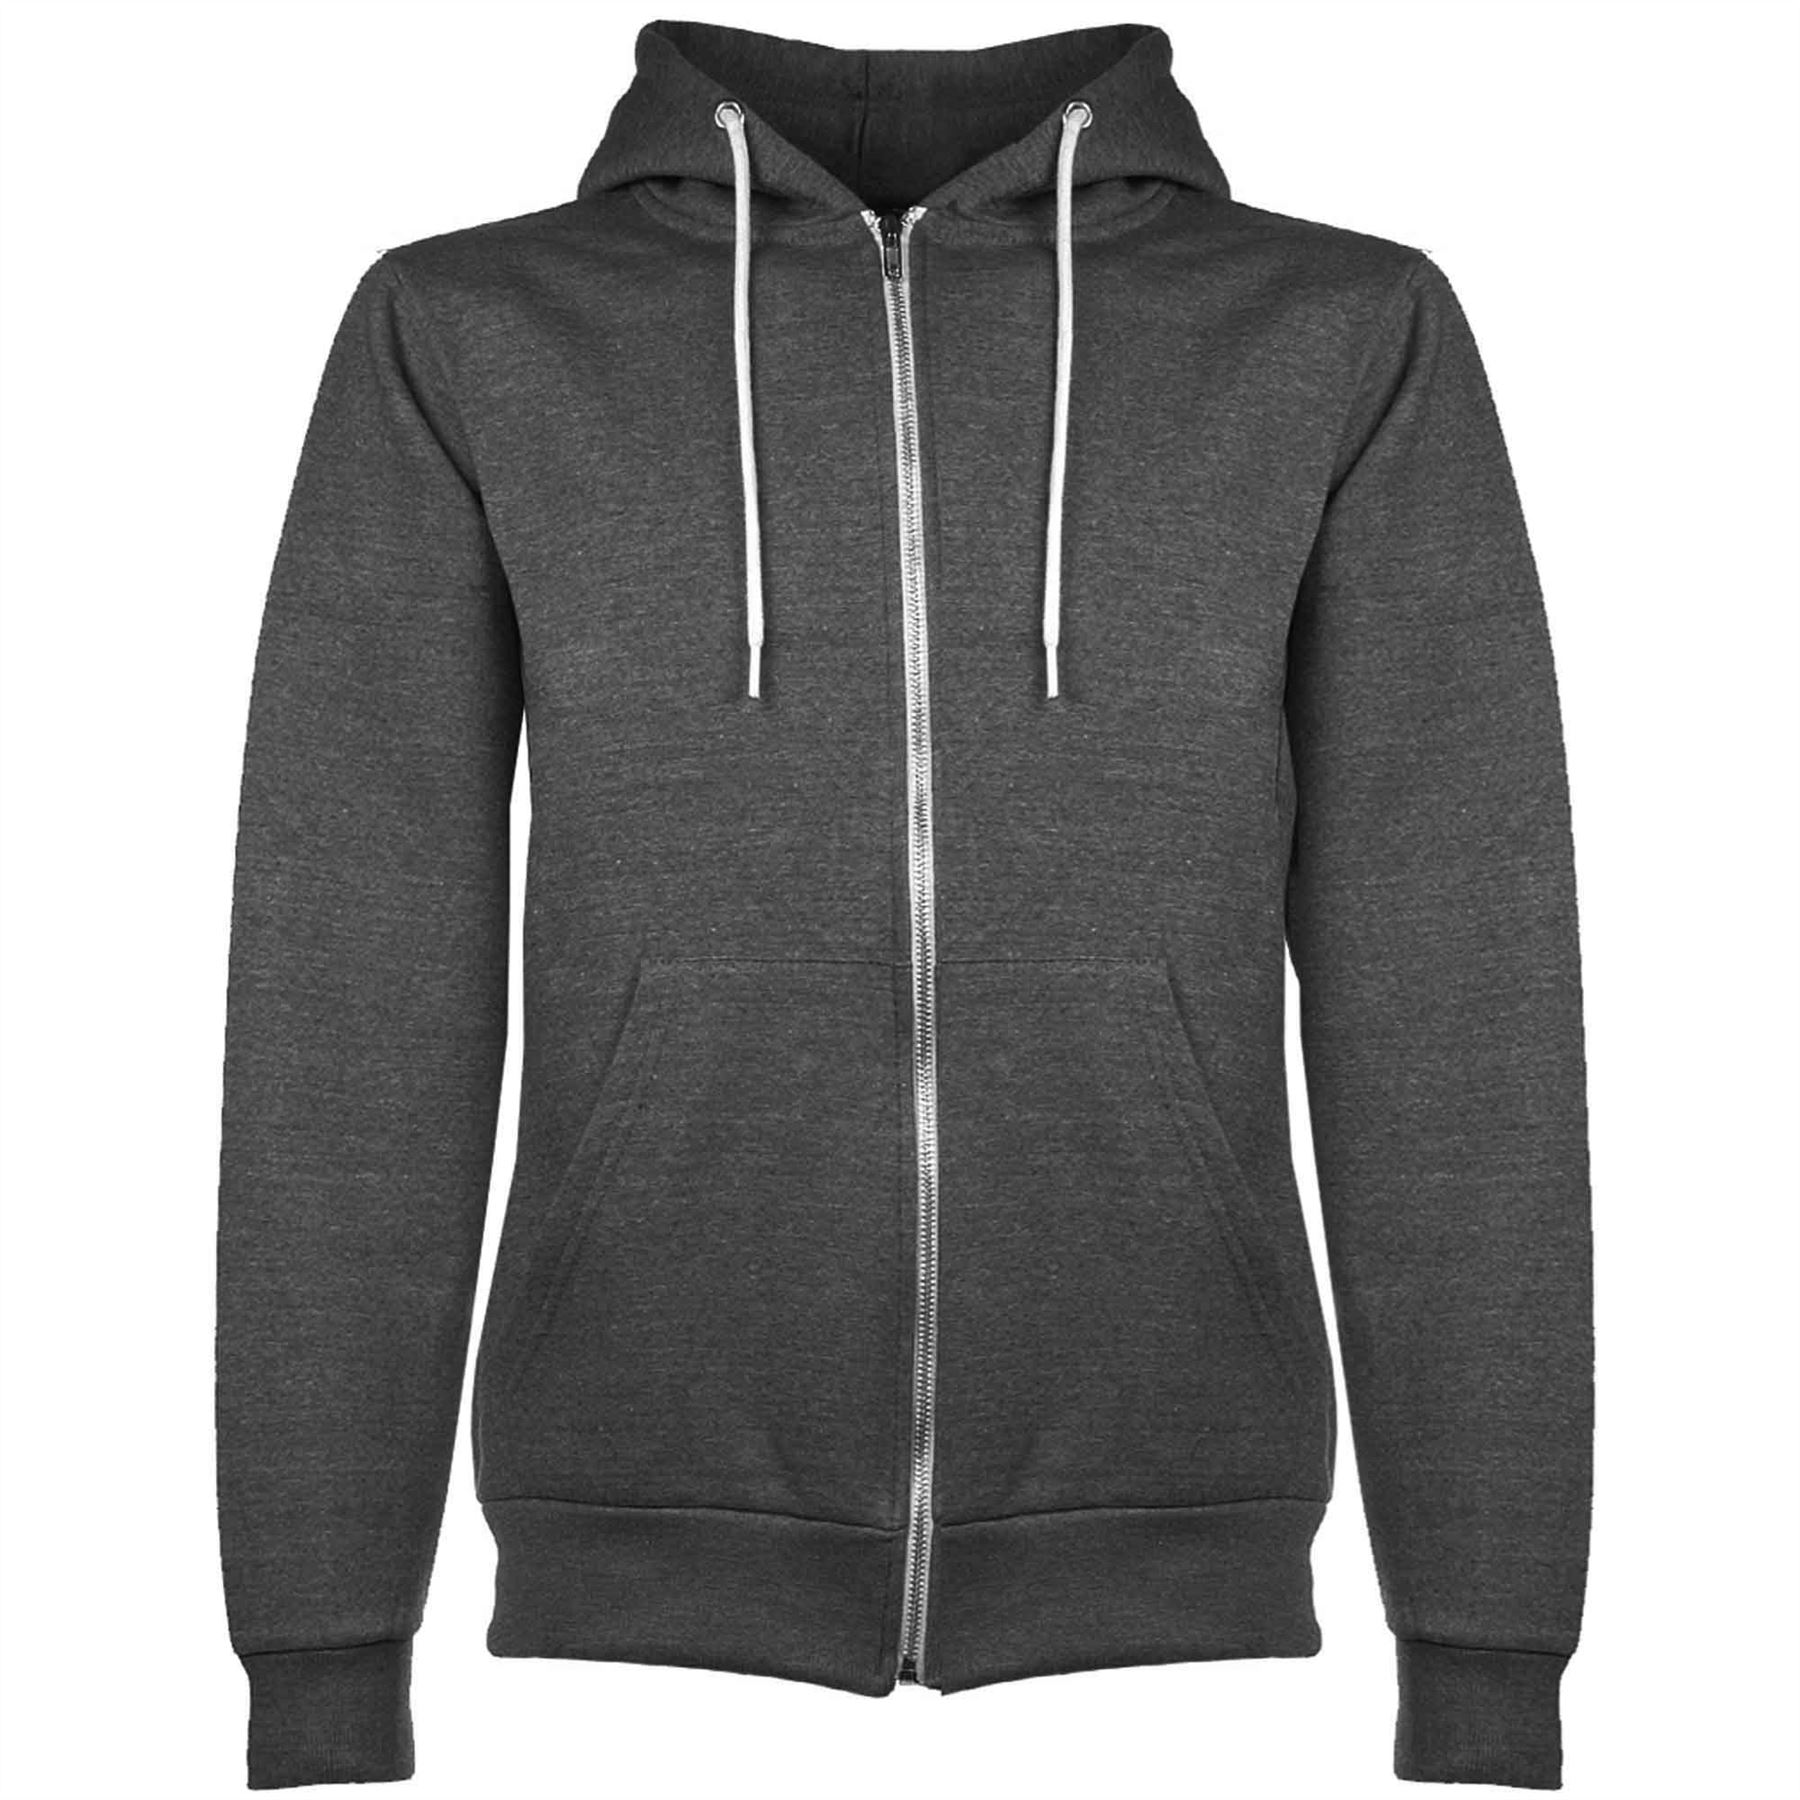 Pair men's hoodies with men's joggers and sweatpants for a streamlined look that has the versatility to go everywhere you go. Shop hoodies for women, boys and girls, and be sure to explore the complete collection of men's Nike clothing for additional sport-specific and everyday options.